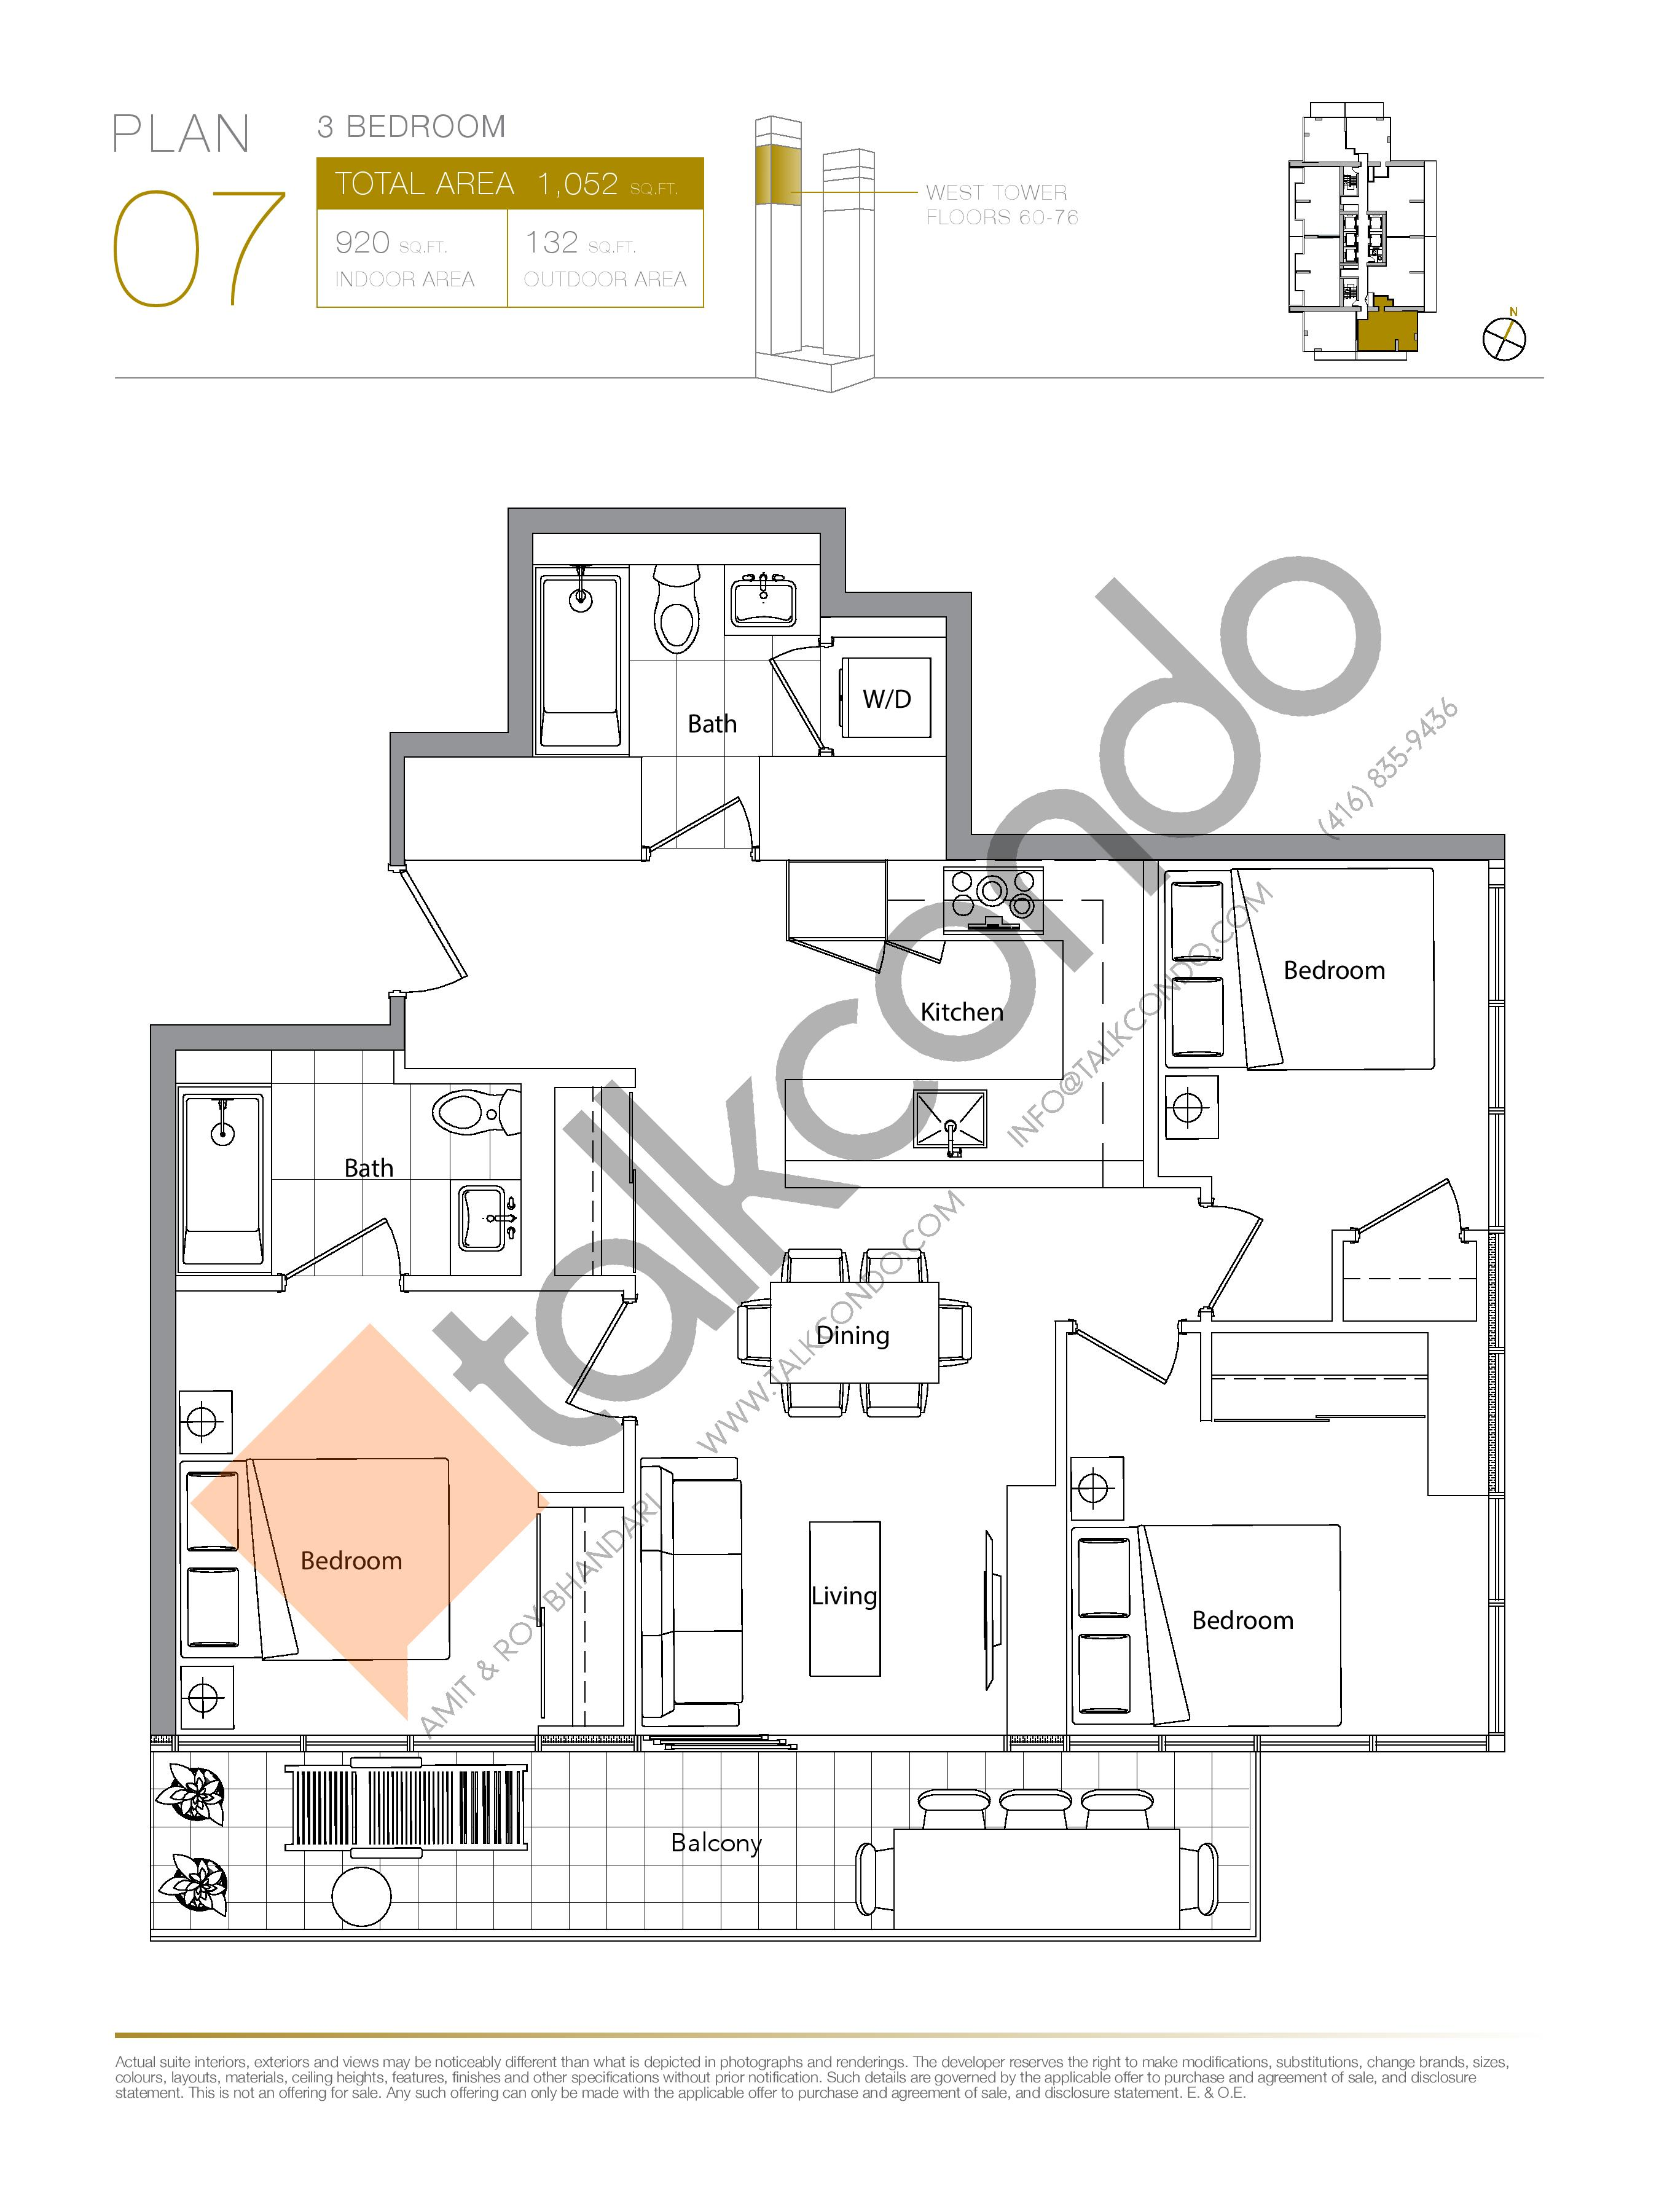 Plan 07 (New Release) Upper Floor Plan at Concord Canada House Condos - 920 sq.ft